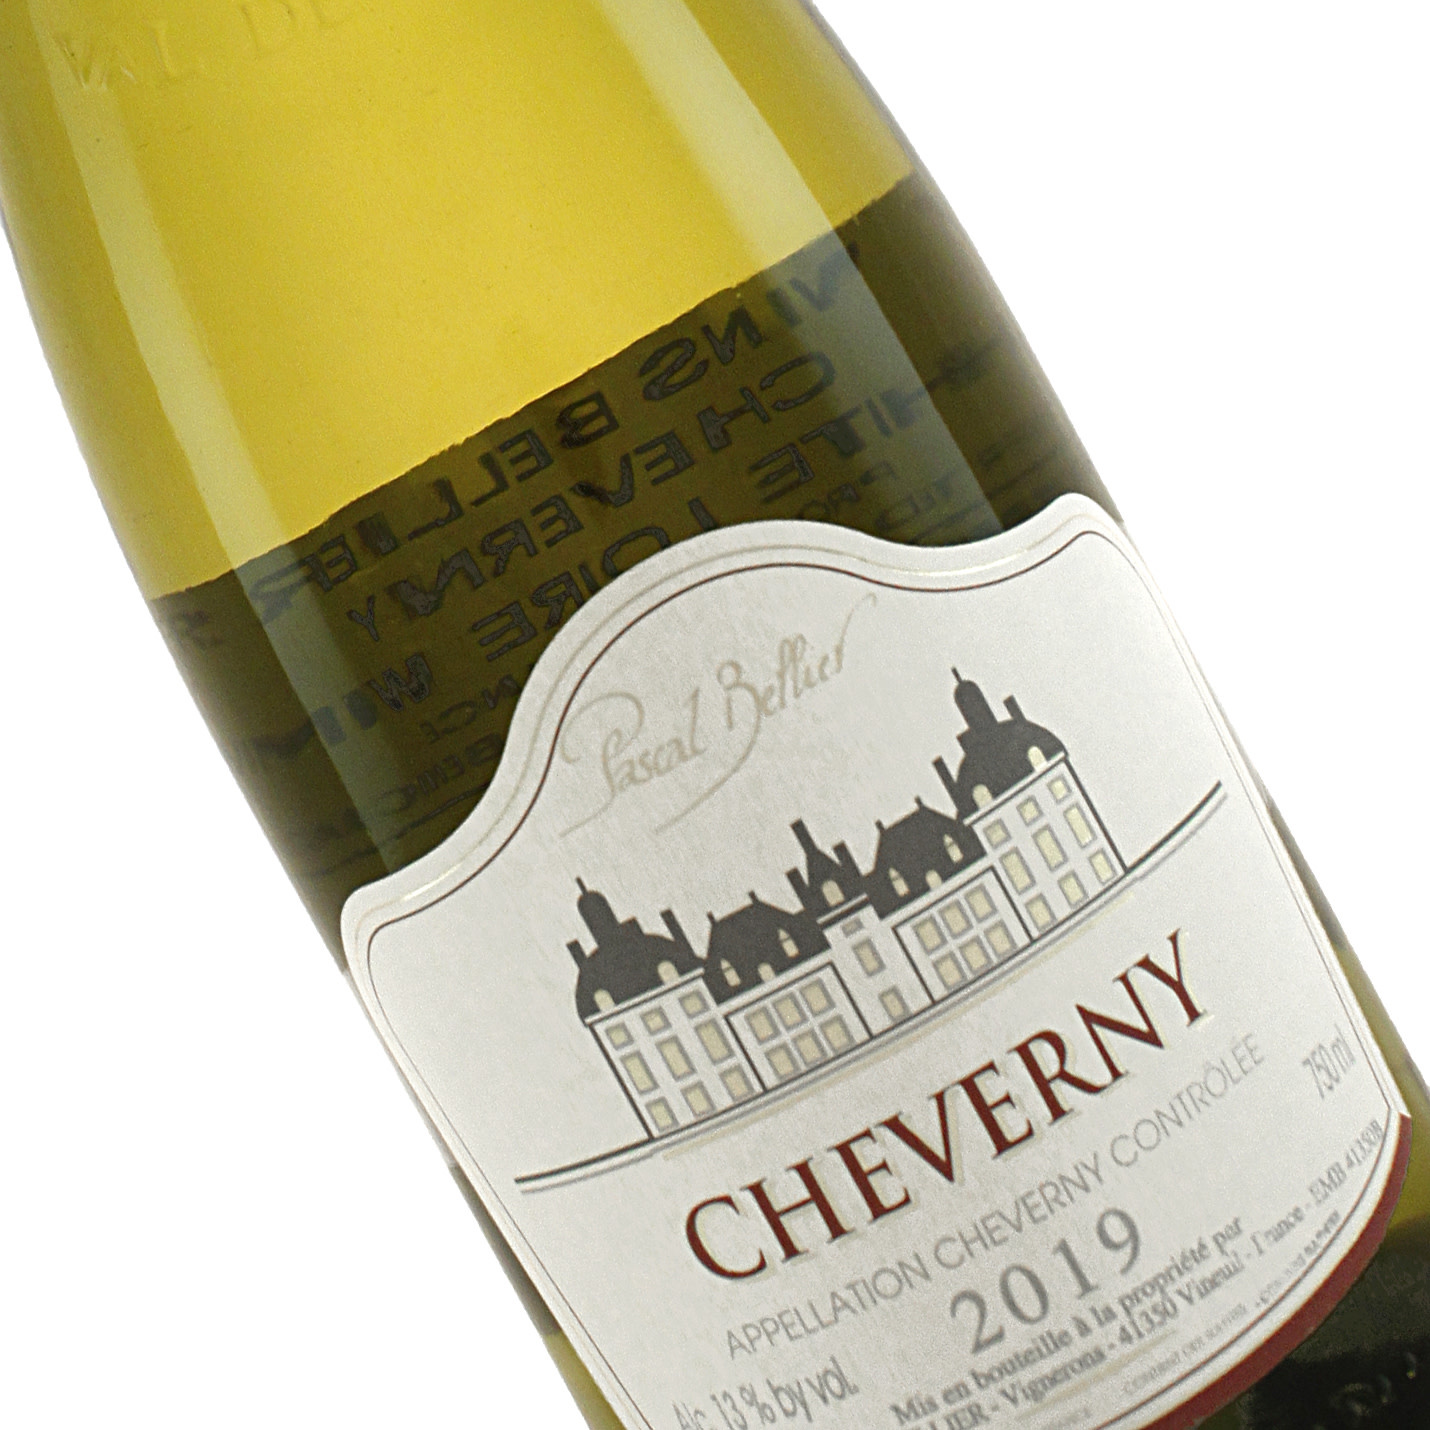 Pascal Bellier 2019 Cheverny Blanc, Loire Valley